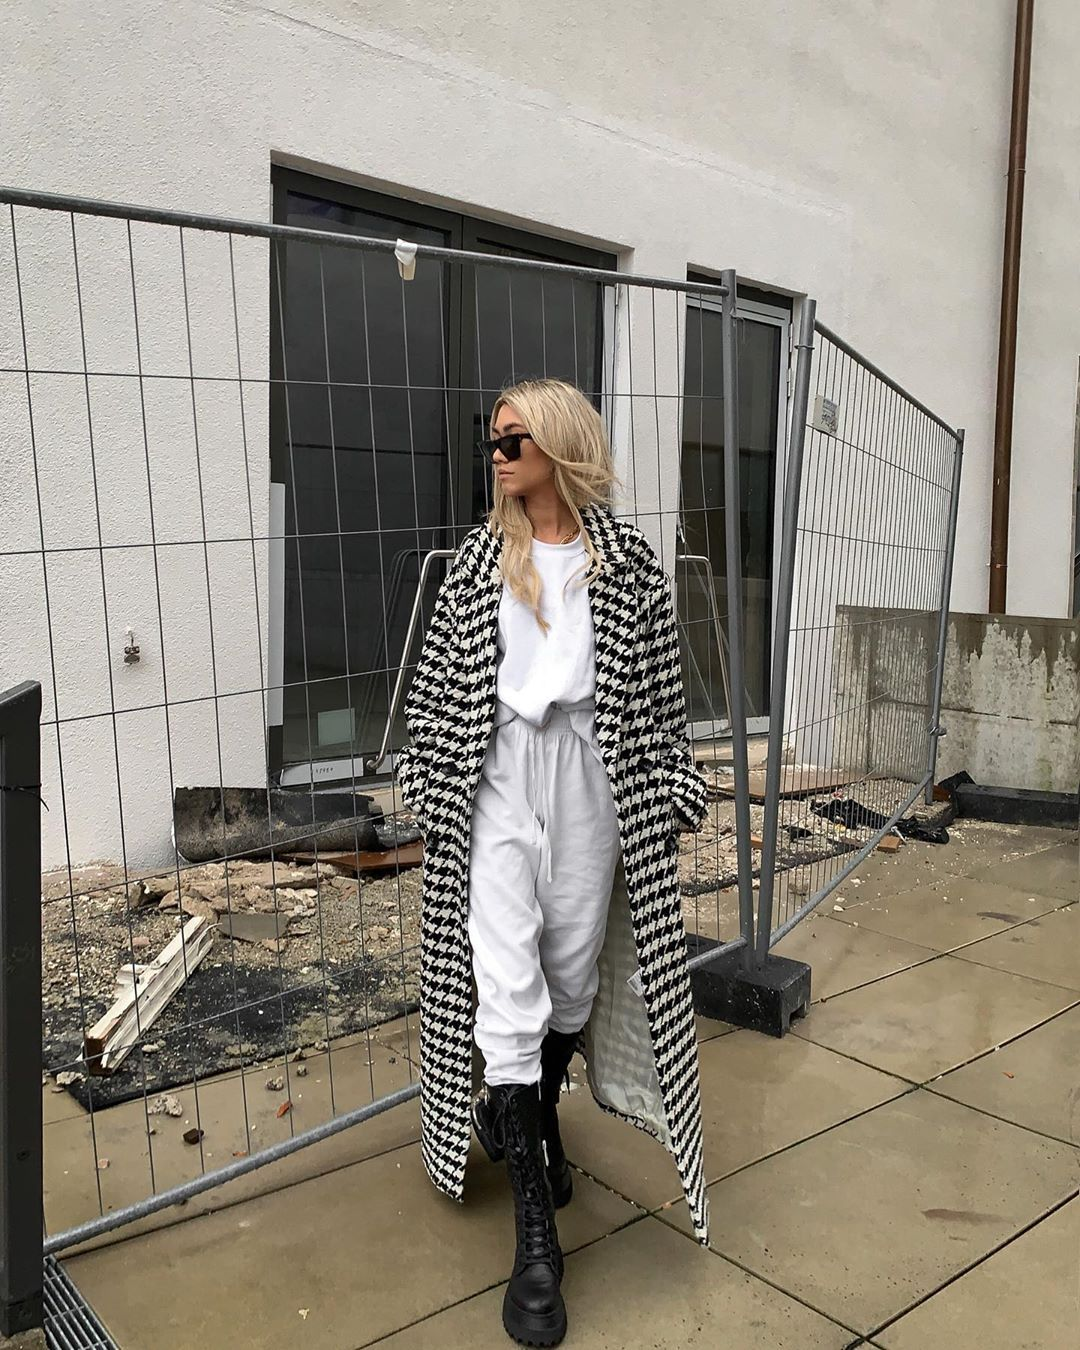 Pin By Kaya On Babe Attire In 2020 Fashion Fall Fashion Outfits